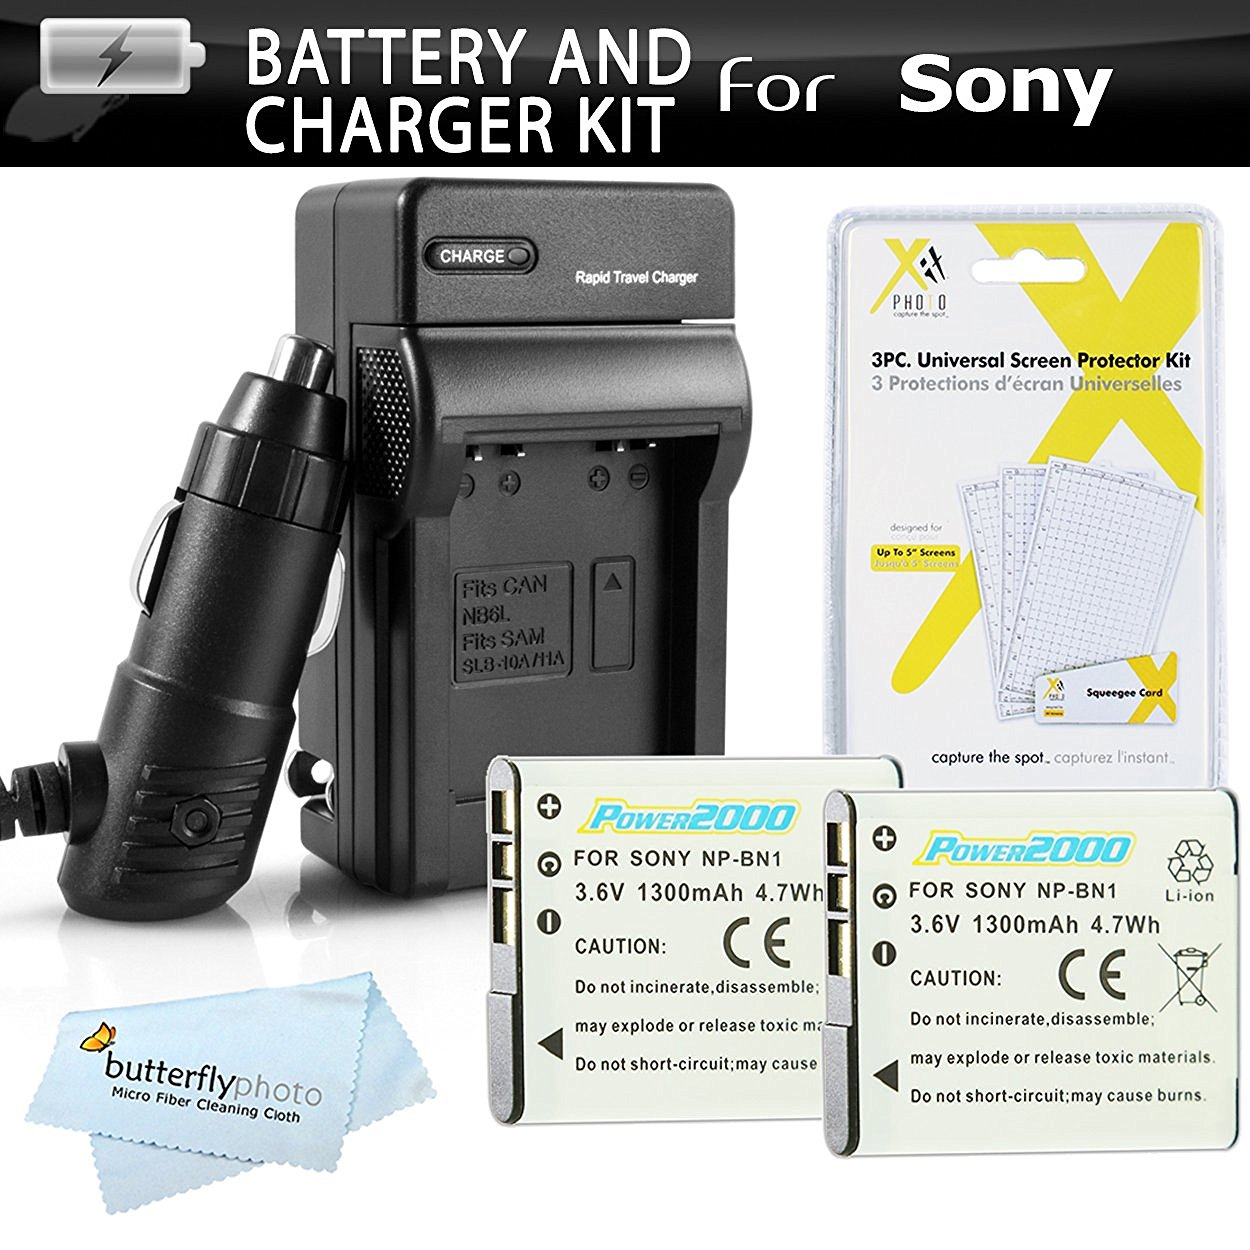 2 Pack Battery And Charger Kit For Sony Cyber-shot DSC-W800, W800/B, W800/S, DSC-W830, DSCW830/B, DSCW830, DSCWX220/B Digital Camera Includes 2 Replacement NP-BN1 Batteries + Ac/Dc Charger + More